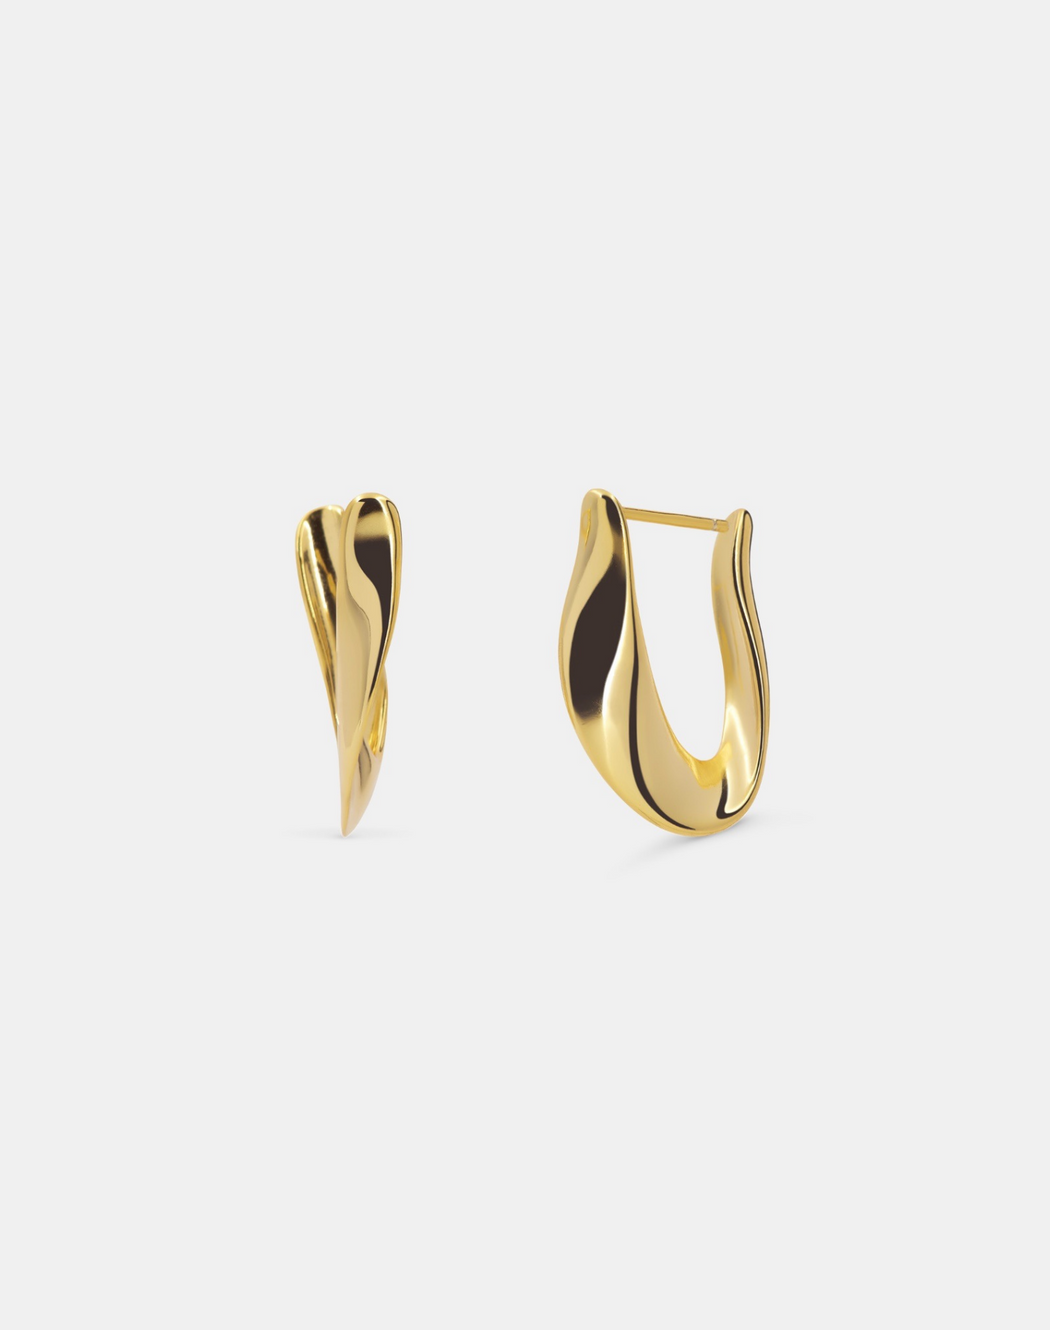 Nana earrings gold - Andcopenhagen.dk